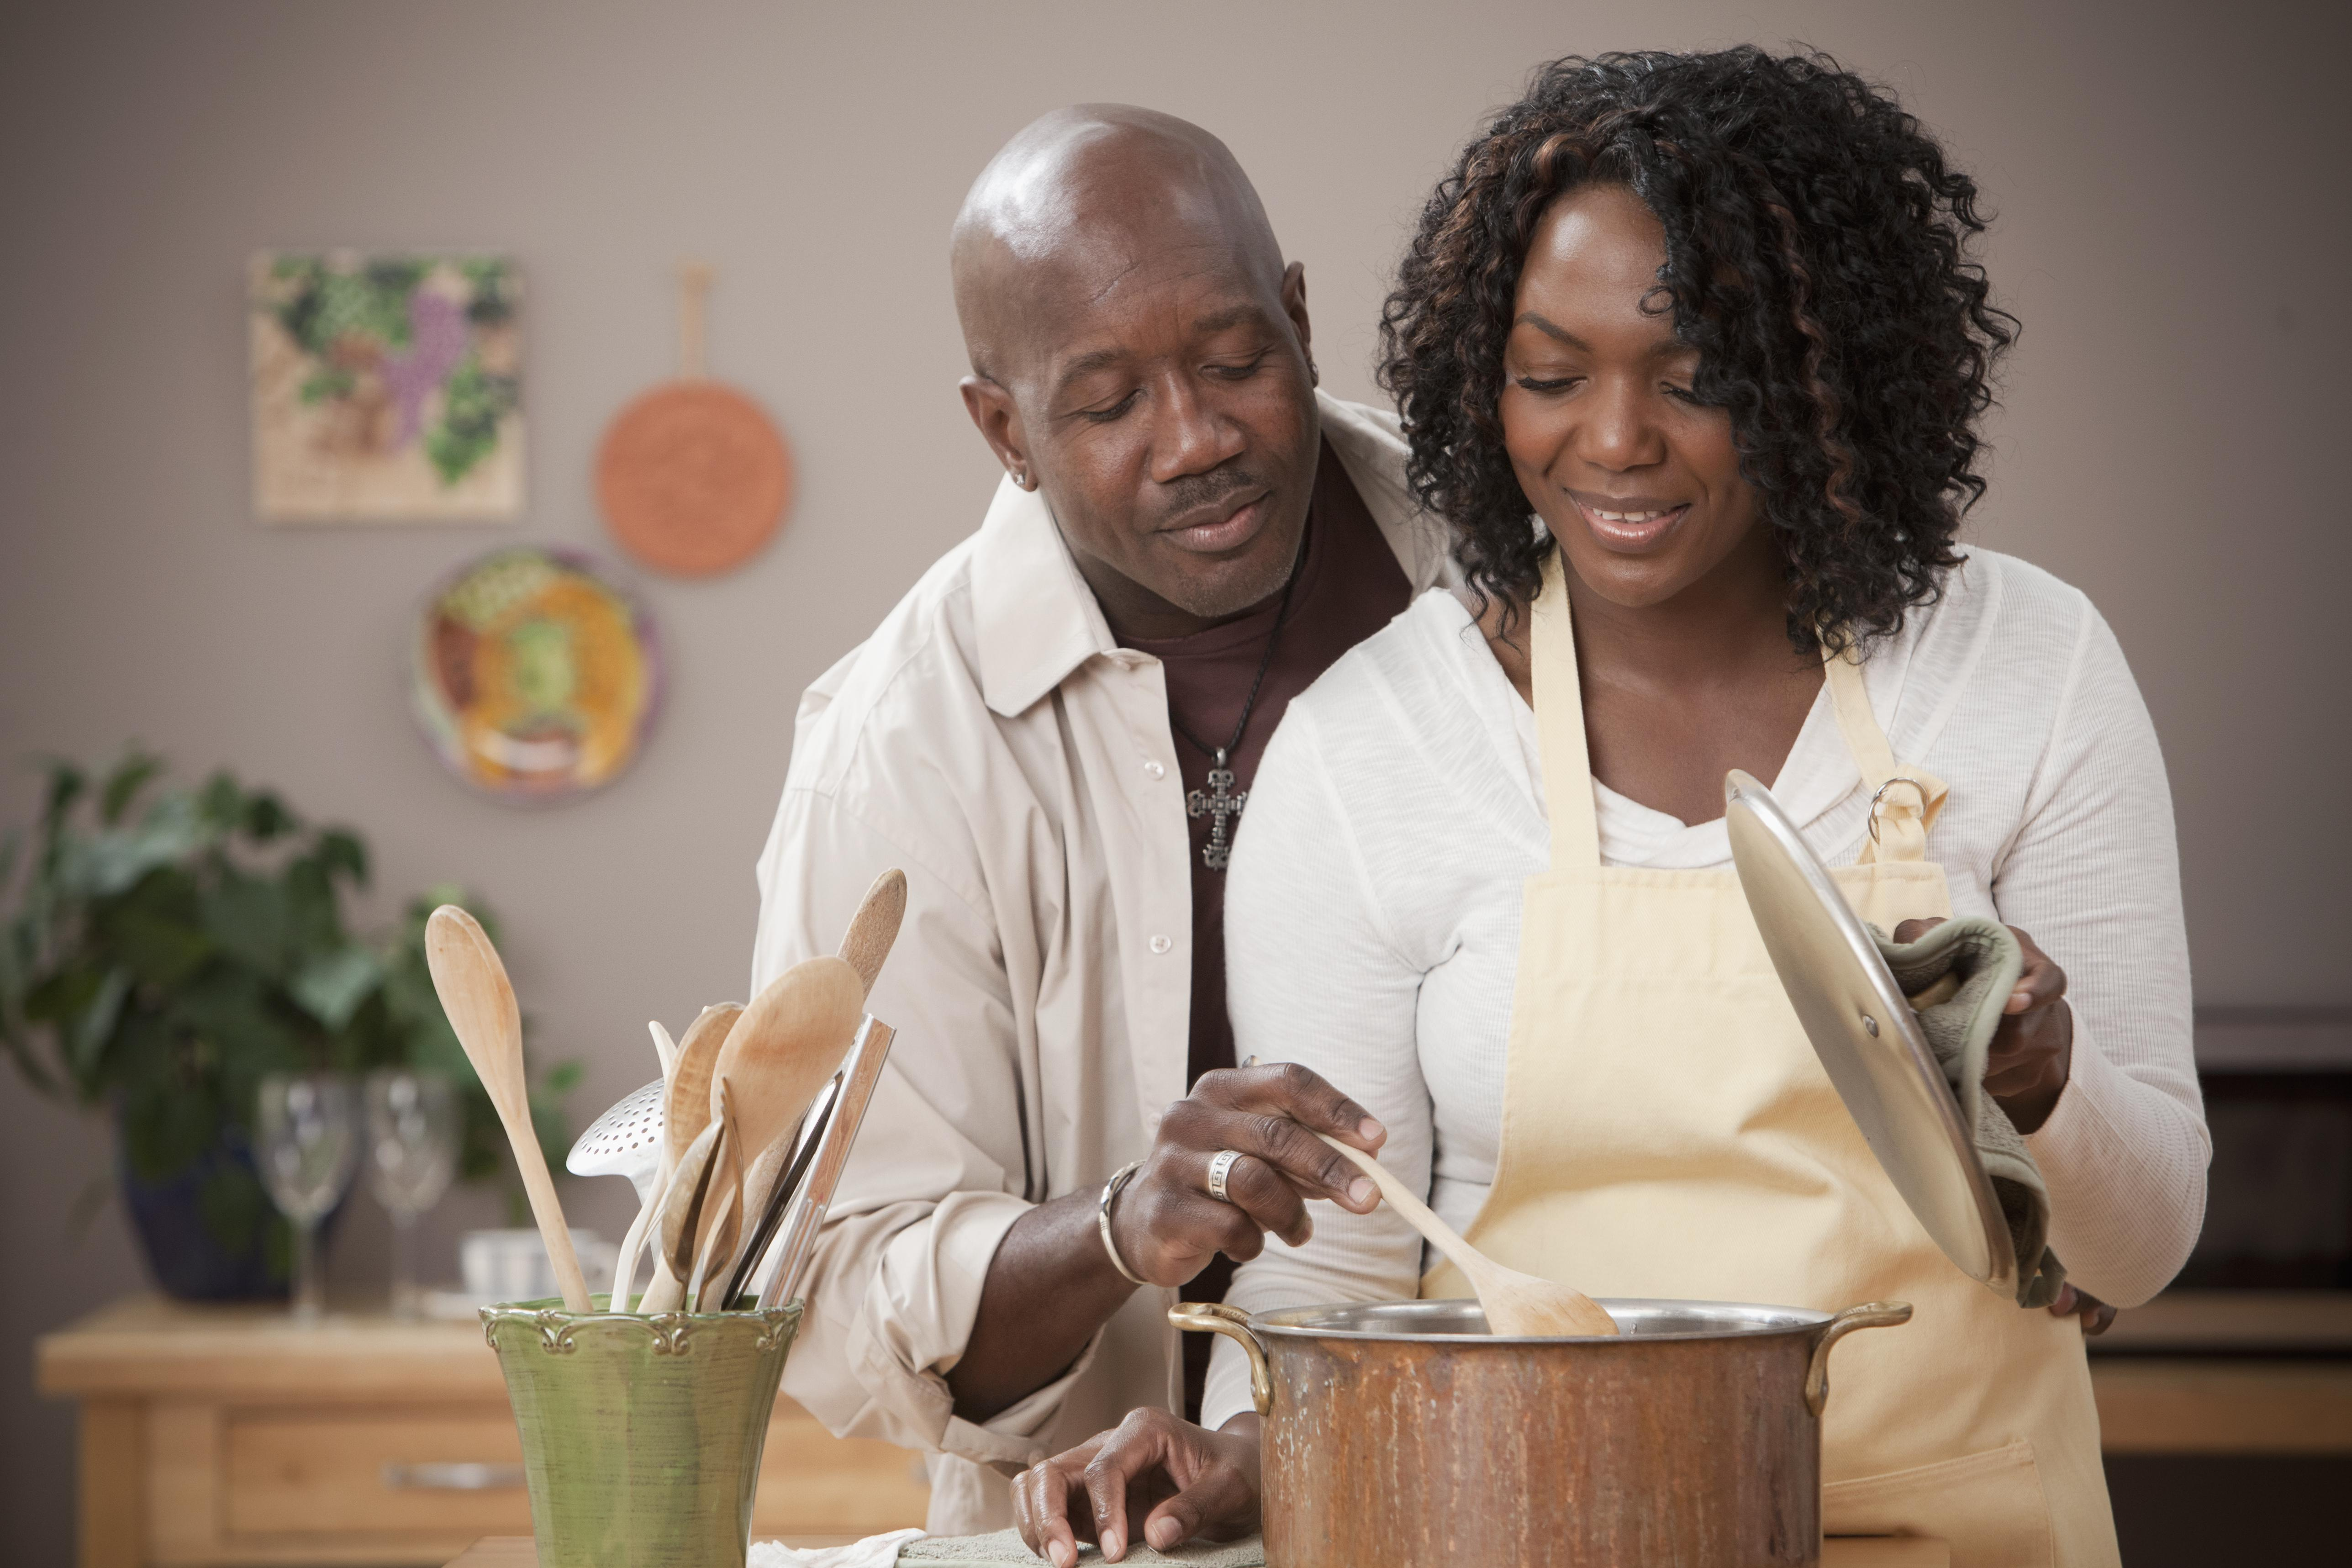 African American couple cooking together